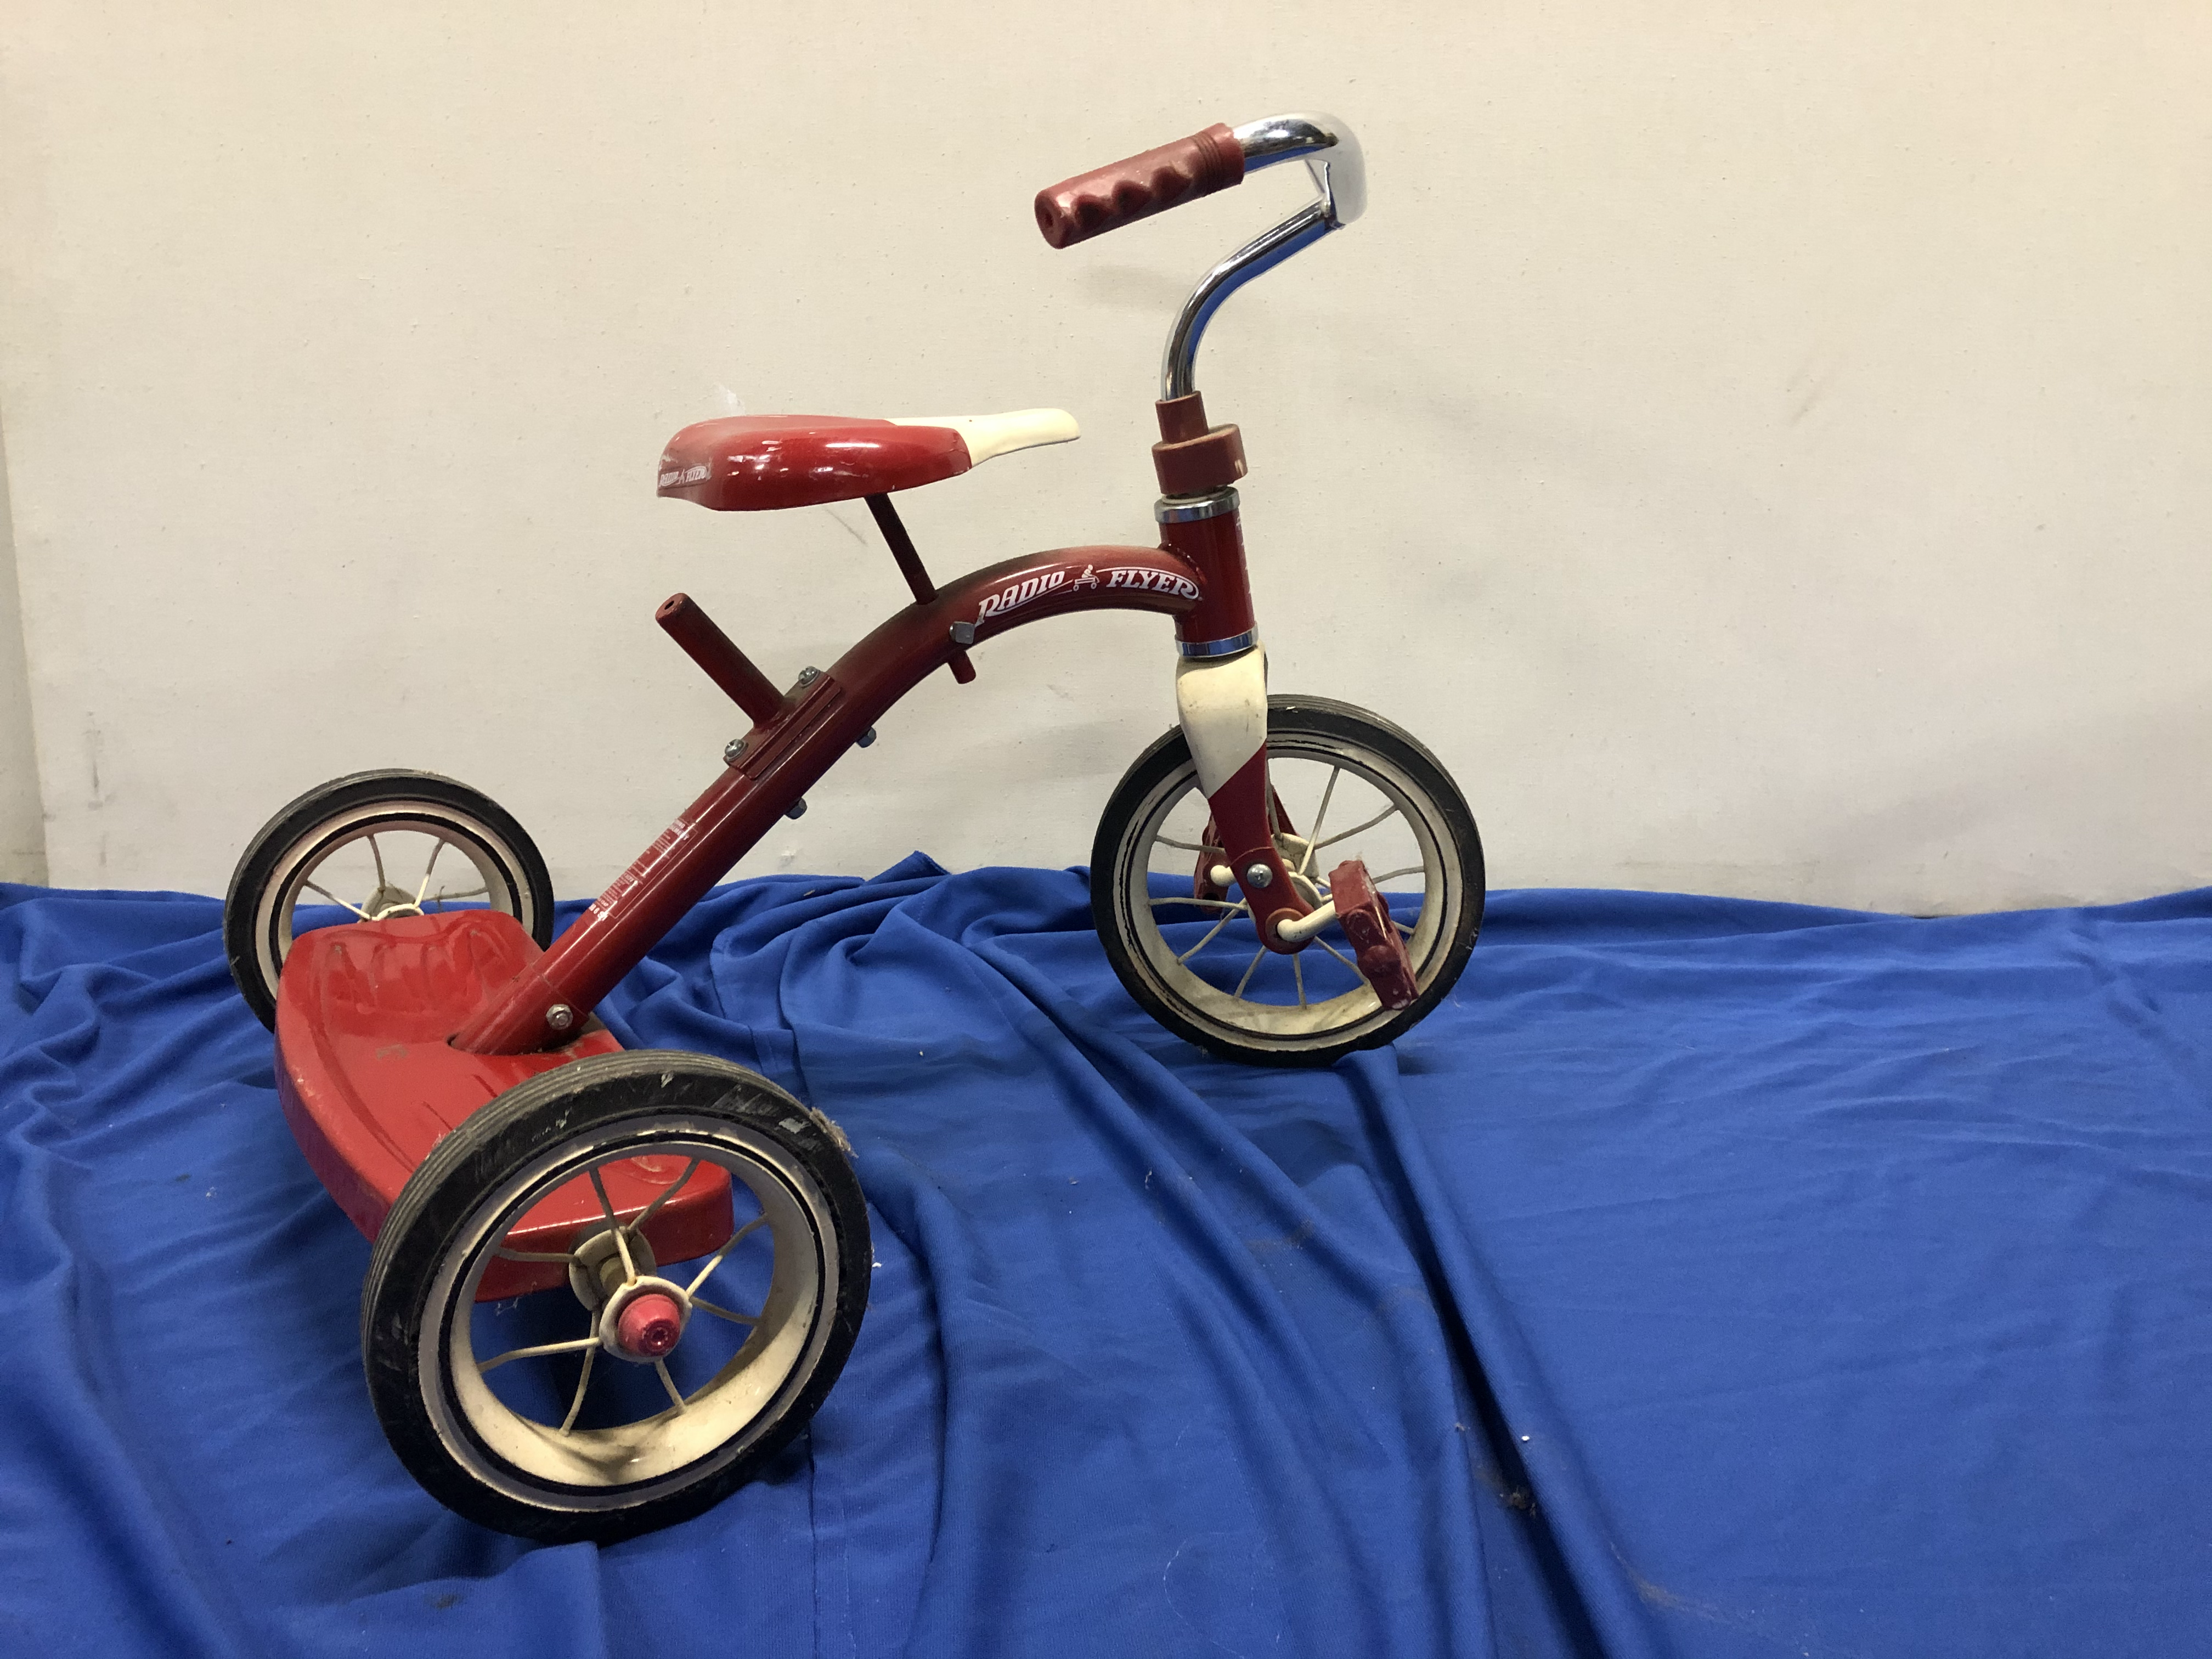 Radio Flyer Tricycle - Child